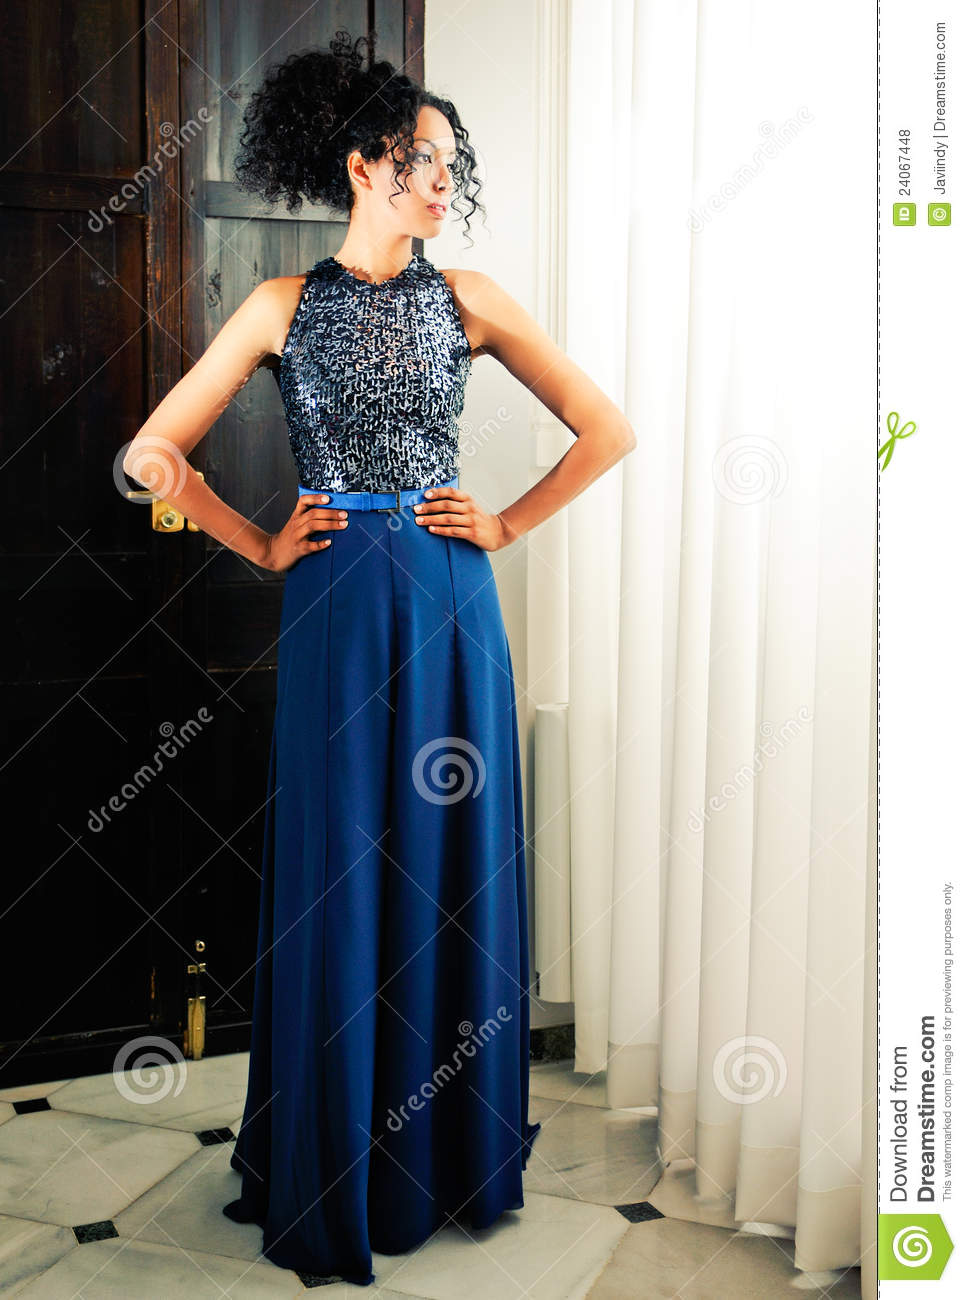 Afro Hair Woman, Model Of Fashion, With Blue Dress Royalty Free Stock Photos - Image: 24067448